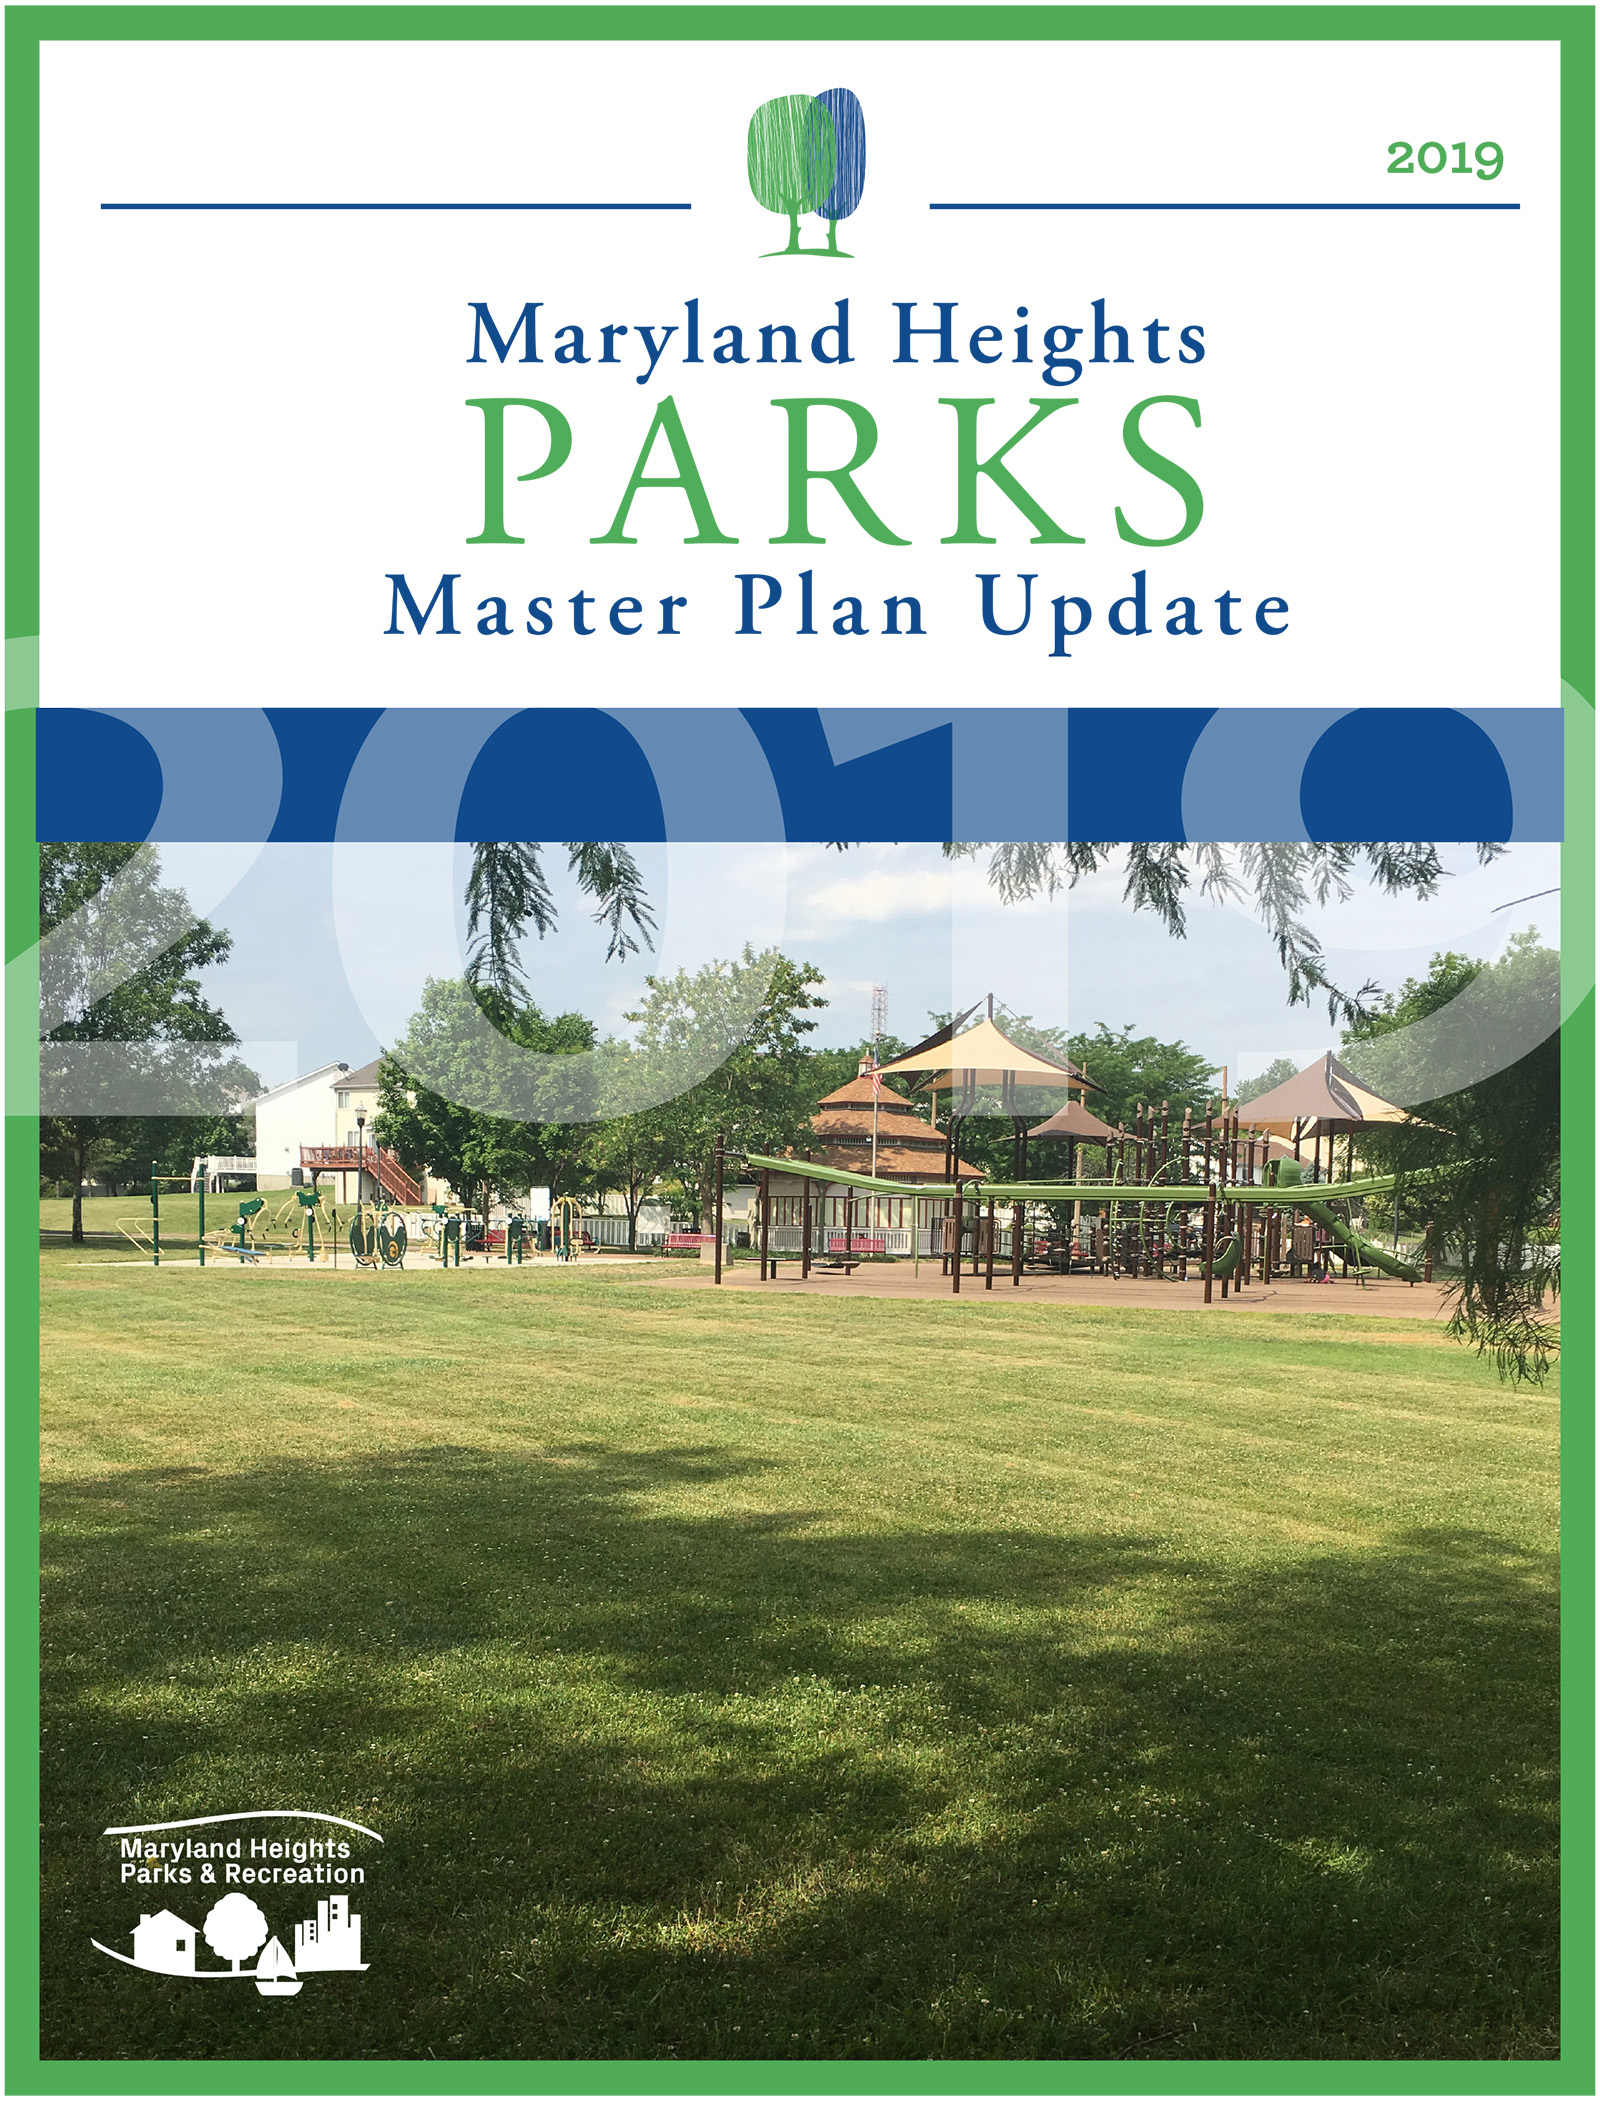 Maryland Heights Parks Master Plan